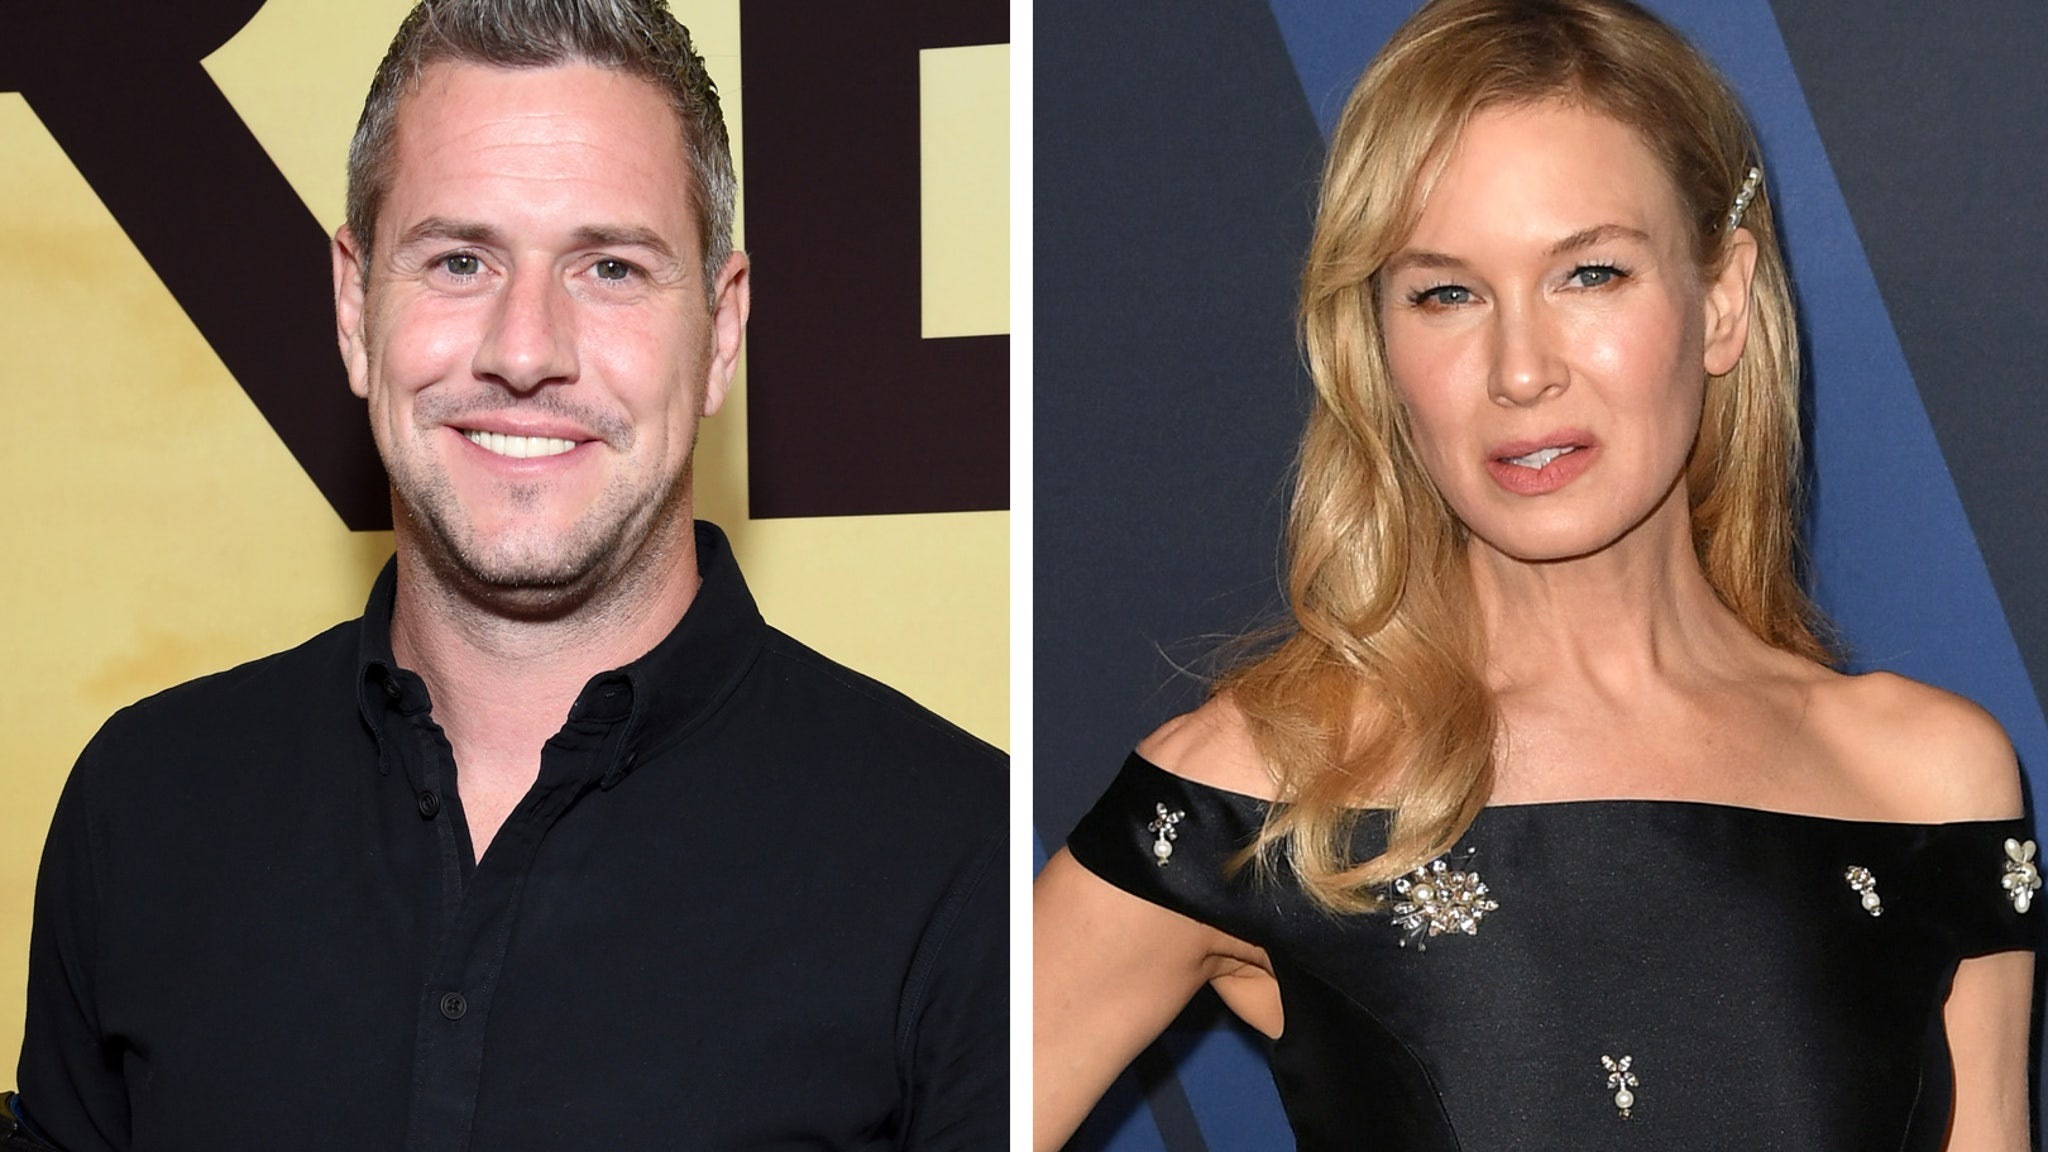 Ant Anstead and Renée Zellweger attend first public event together